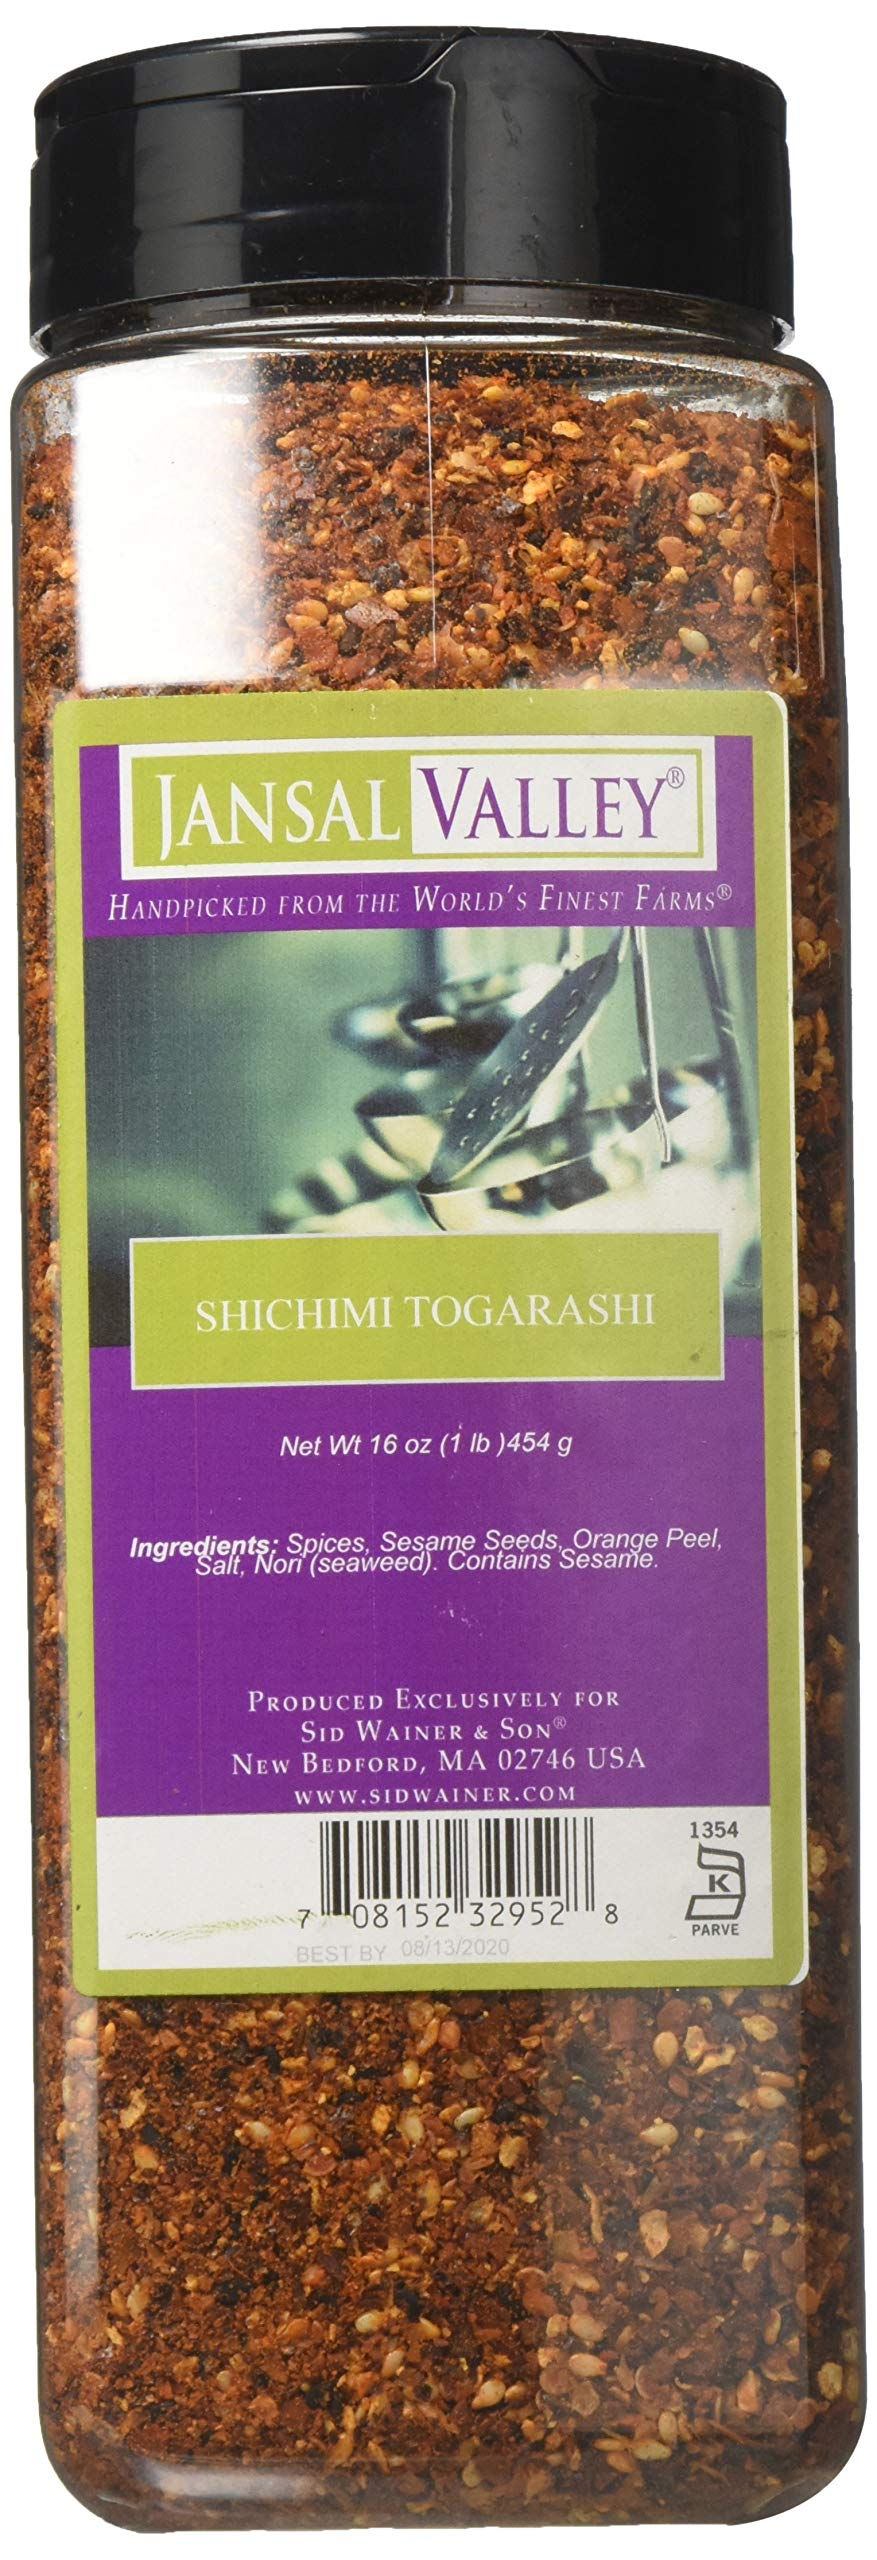 Jansal Valley Shichimi Togarashi, 16 Ounce by Jansal Valley